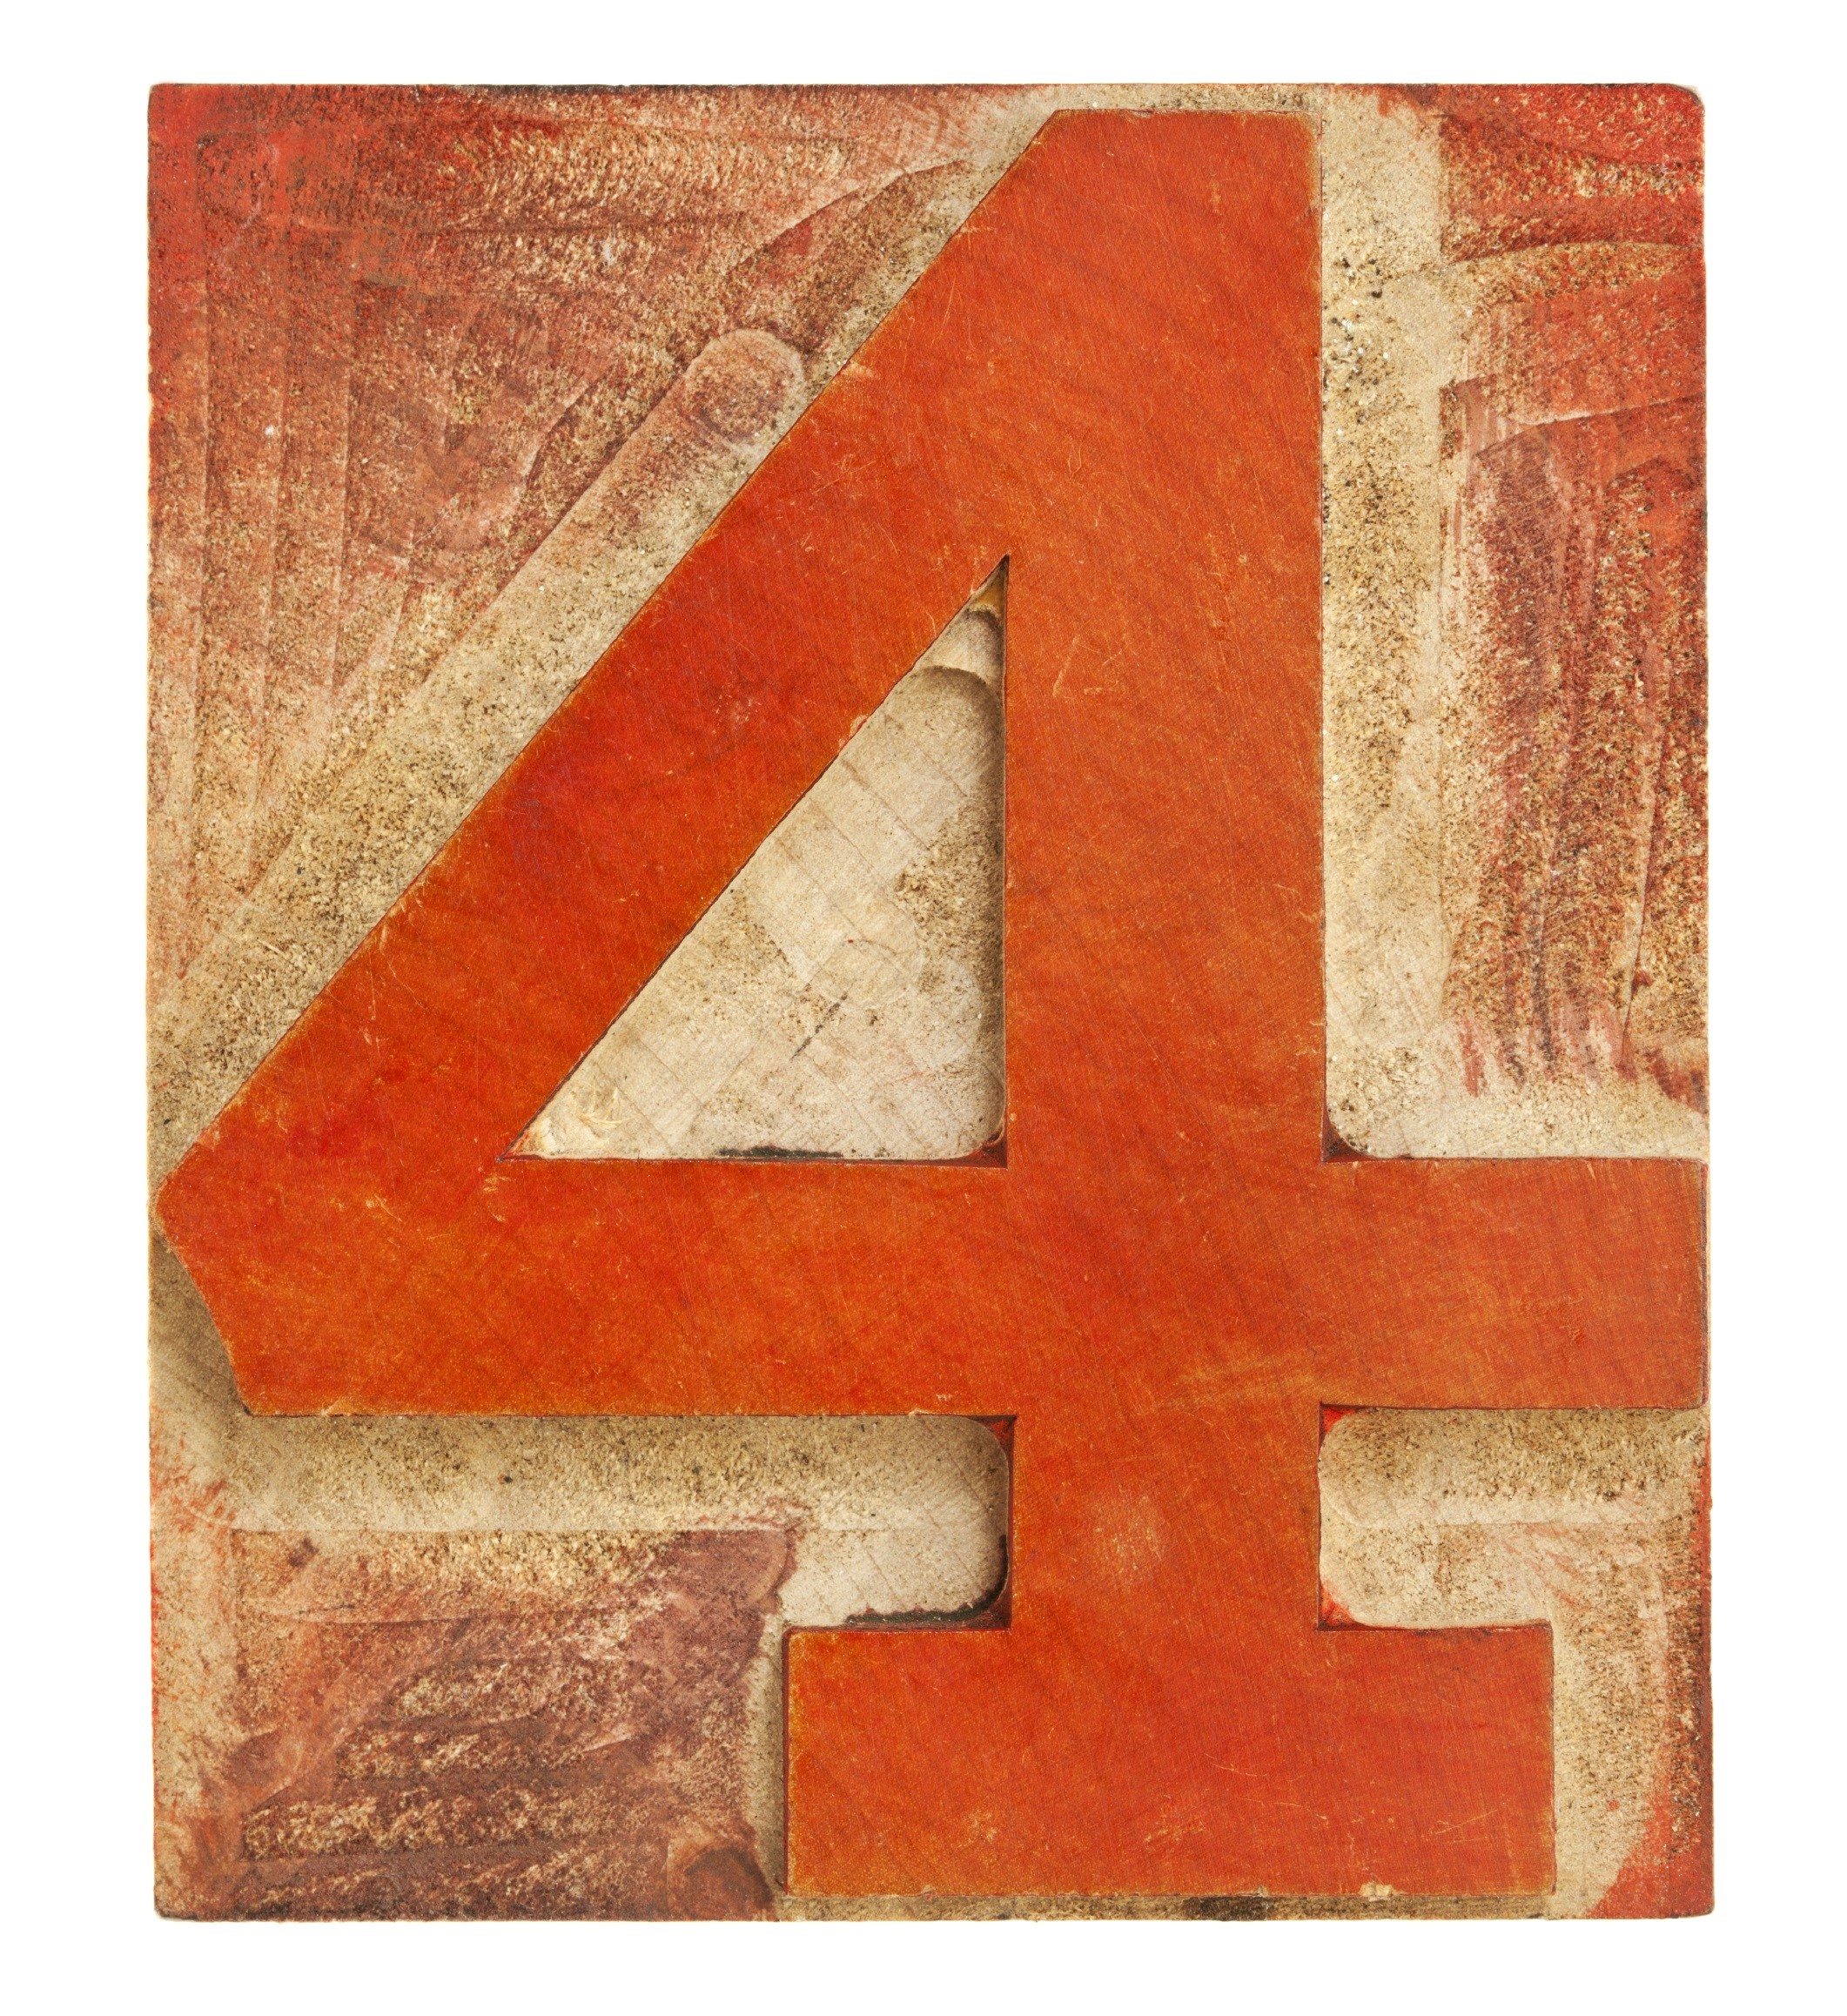 number four - letterpress wood type